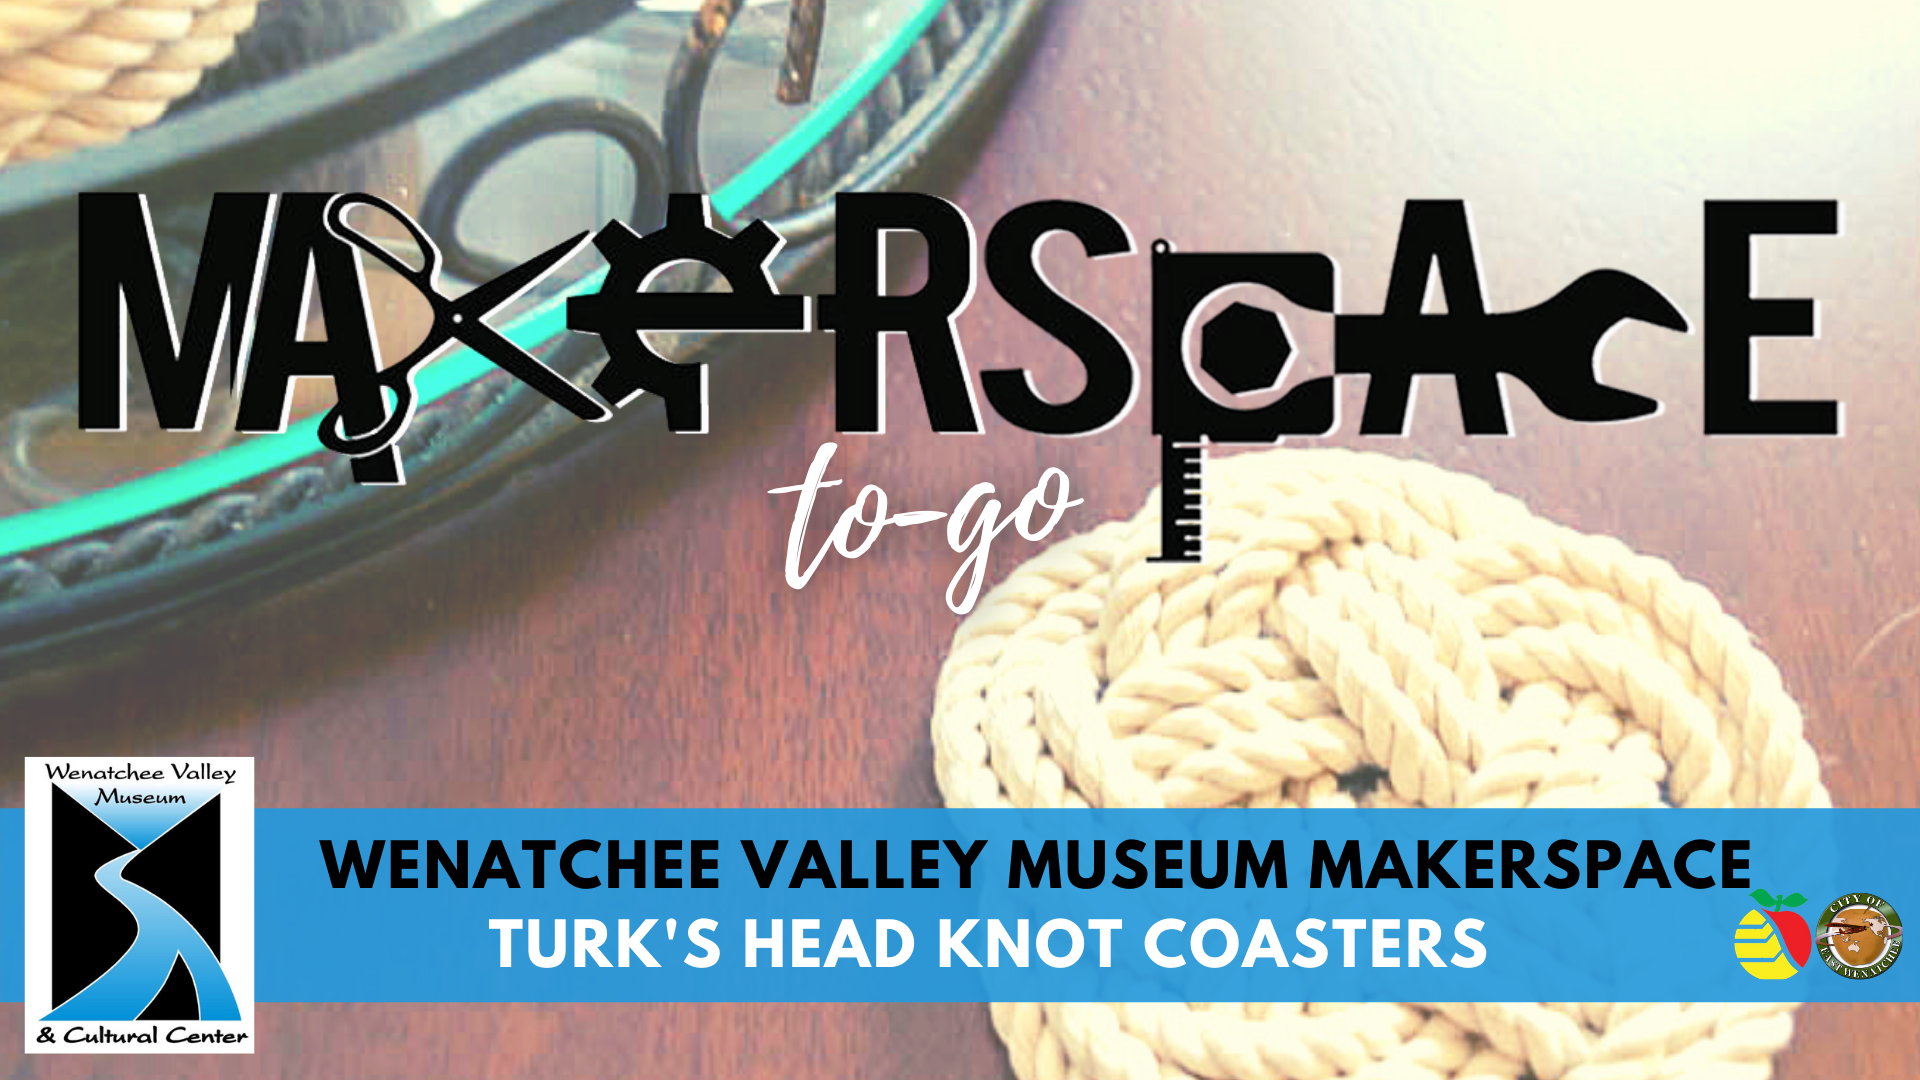 MakerSpace to-go: Turk's Head Knot Coasters